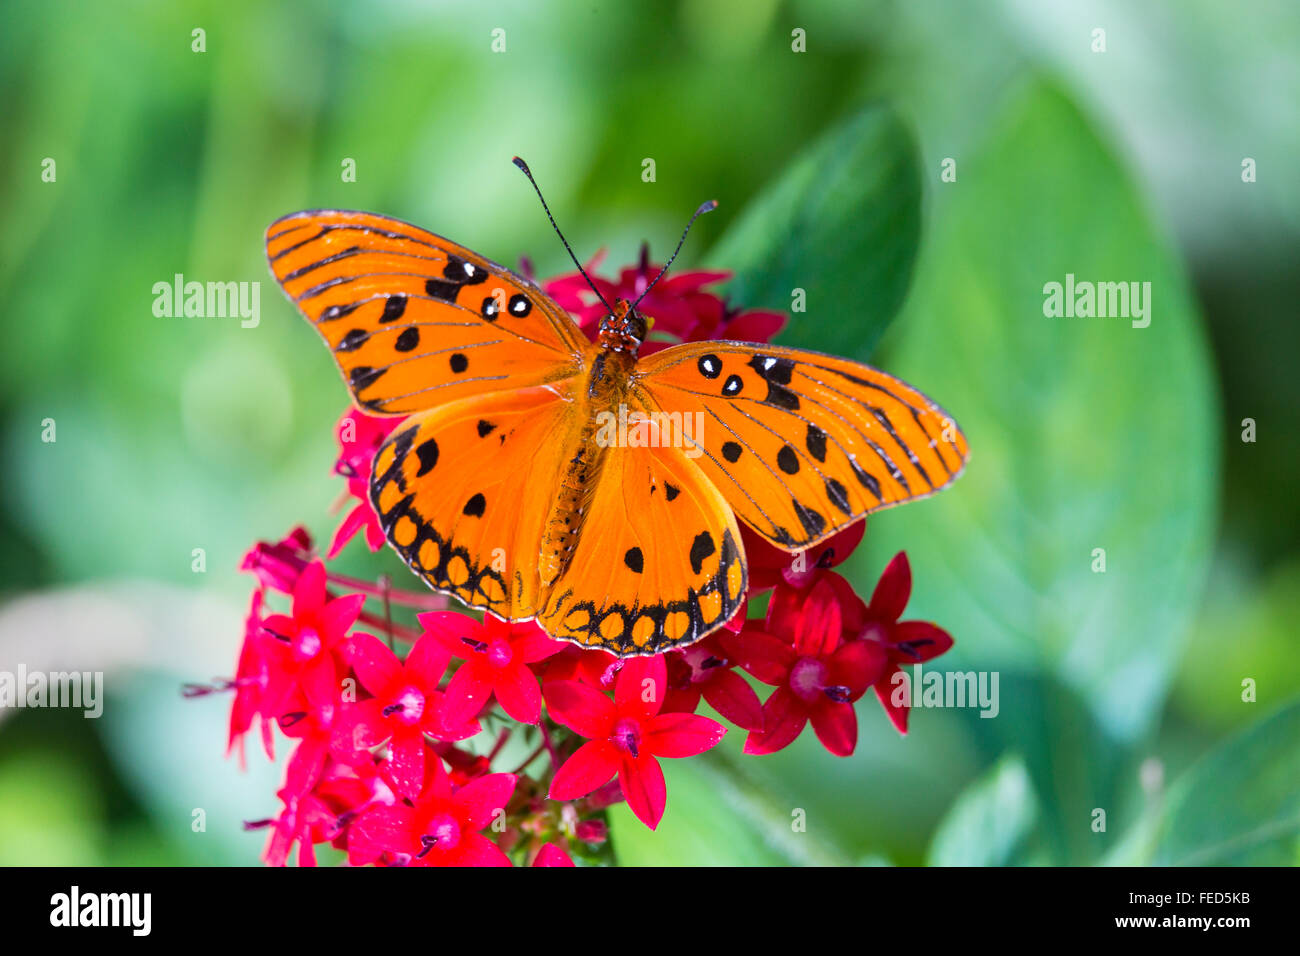 Gulf Fritillary Butterfly Agraulis vanillae on a flower at The Butterfly Estaes in Fort Myers Florida - Stock Image